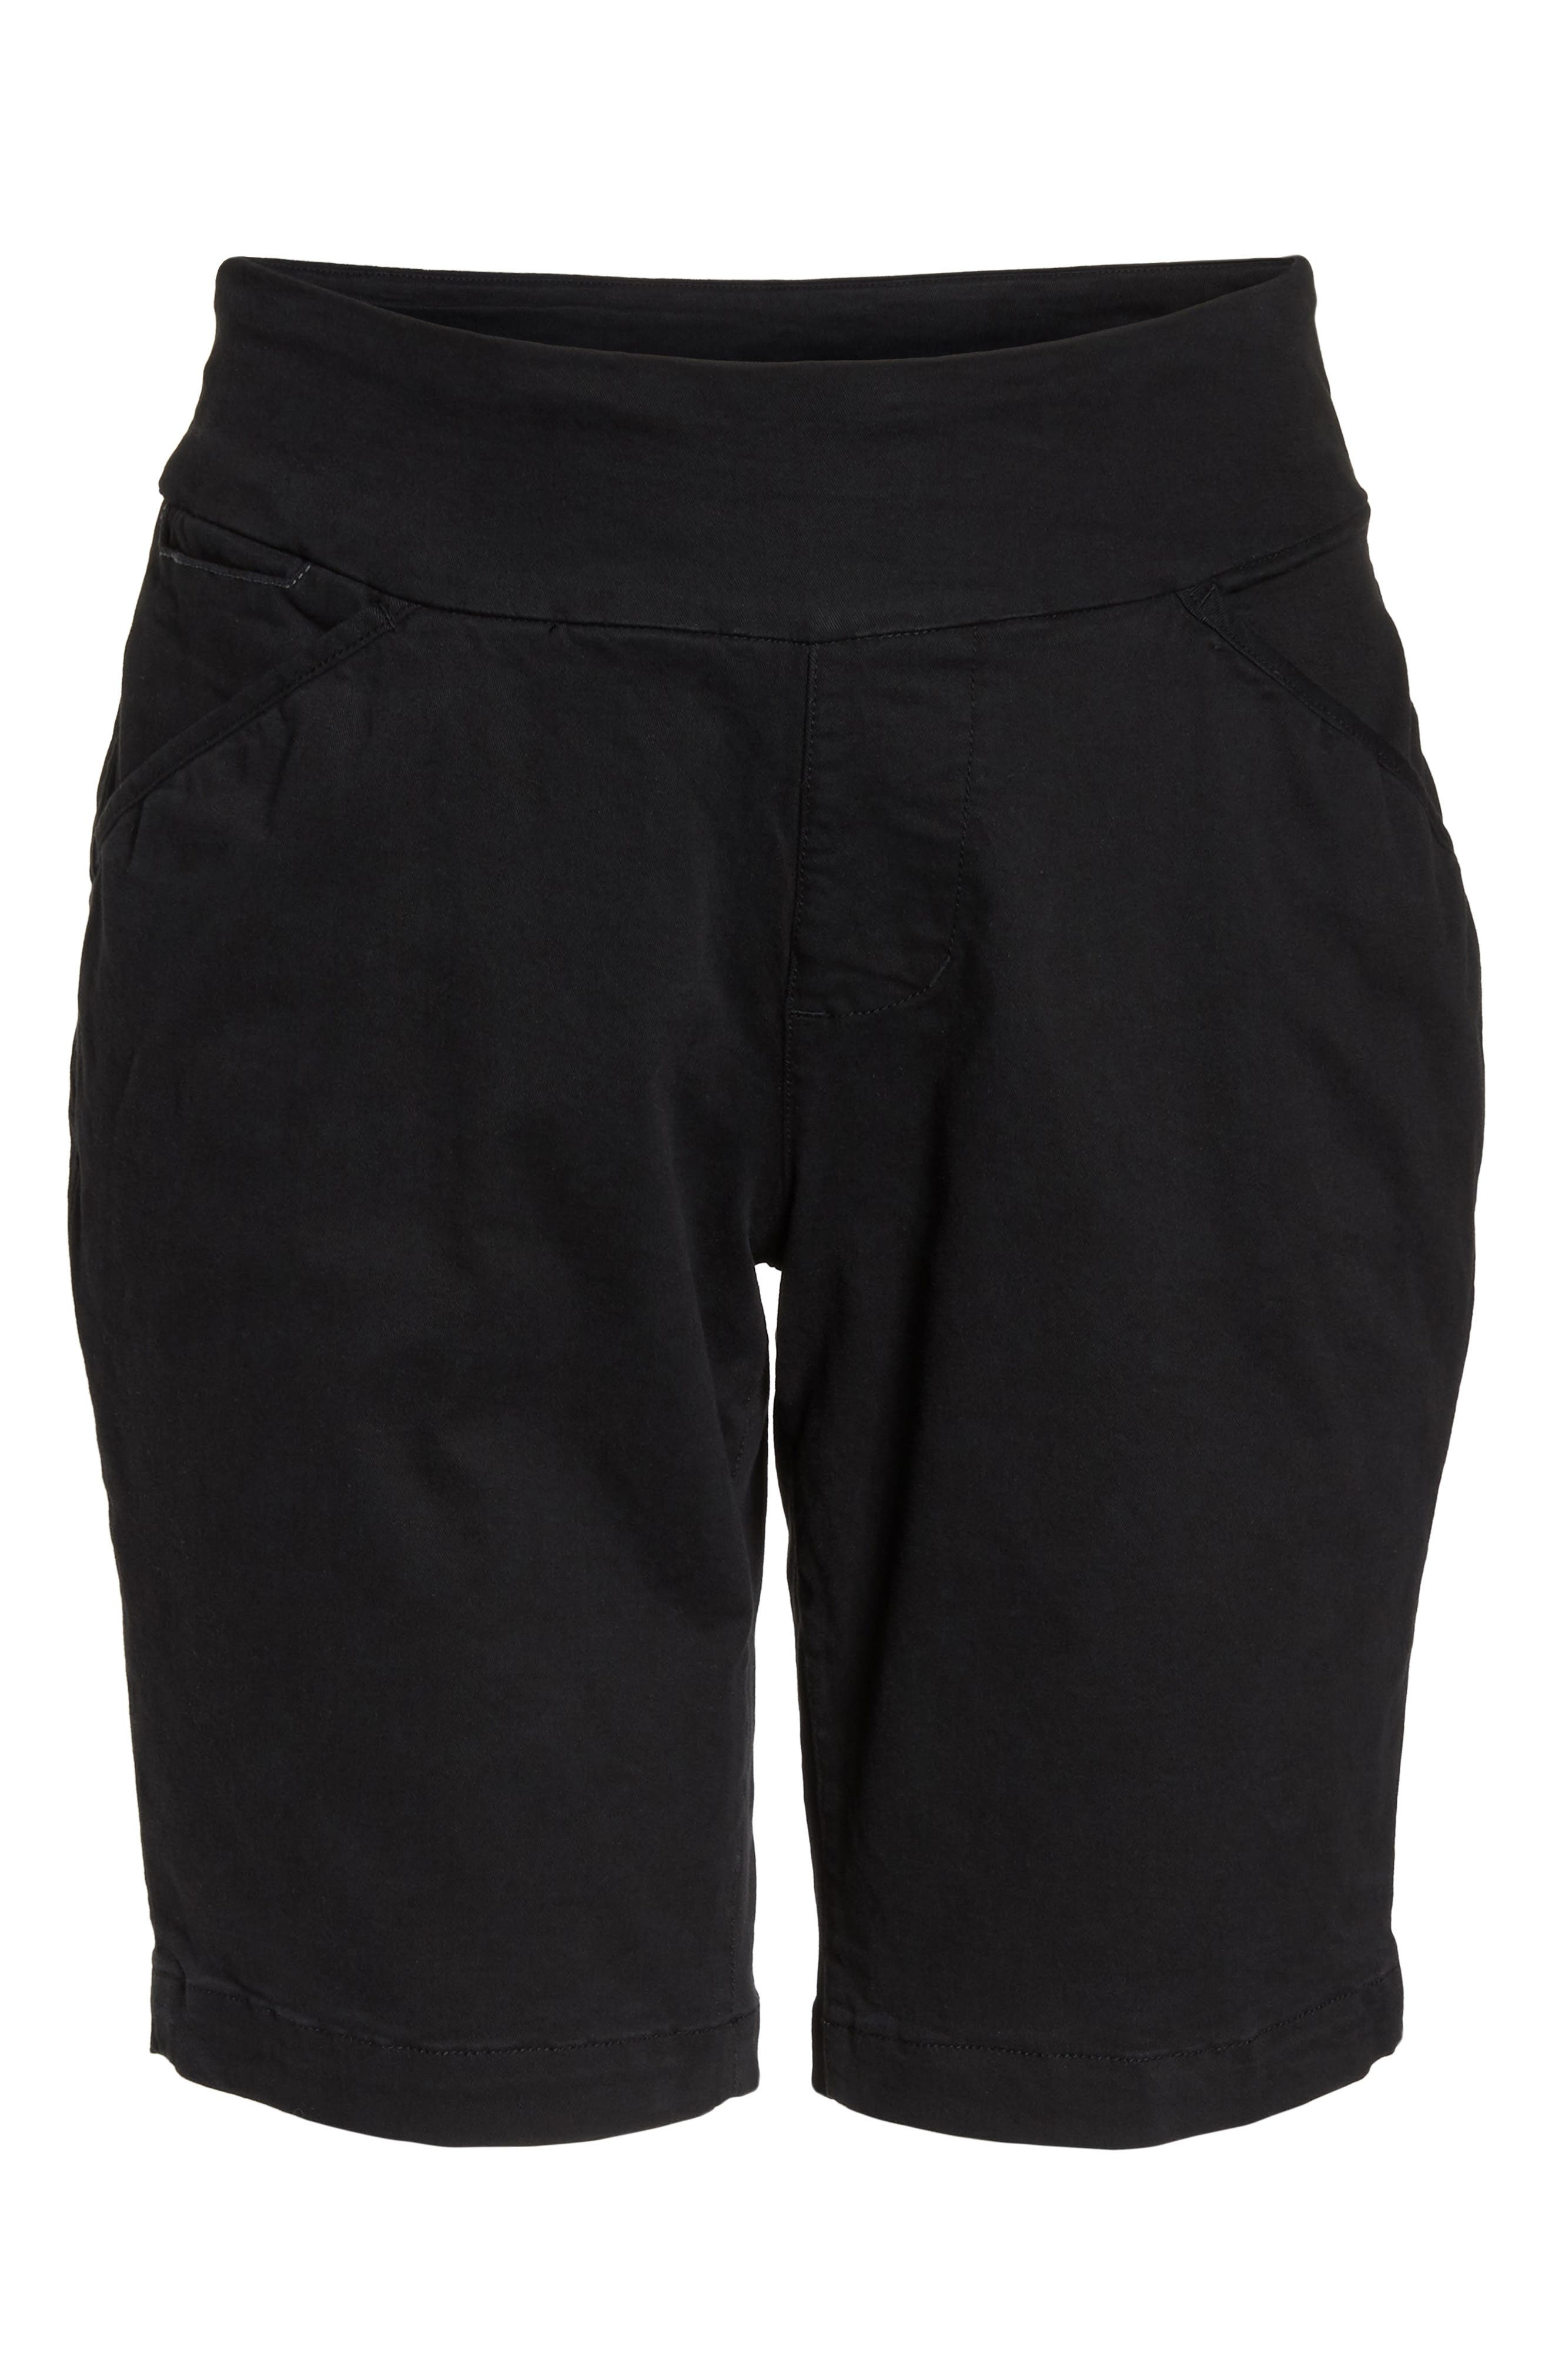 Ainsley Pull-On Bermuda Shorts,                             Alternate thumbnail 7, color,                             Black